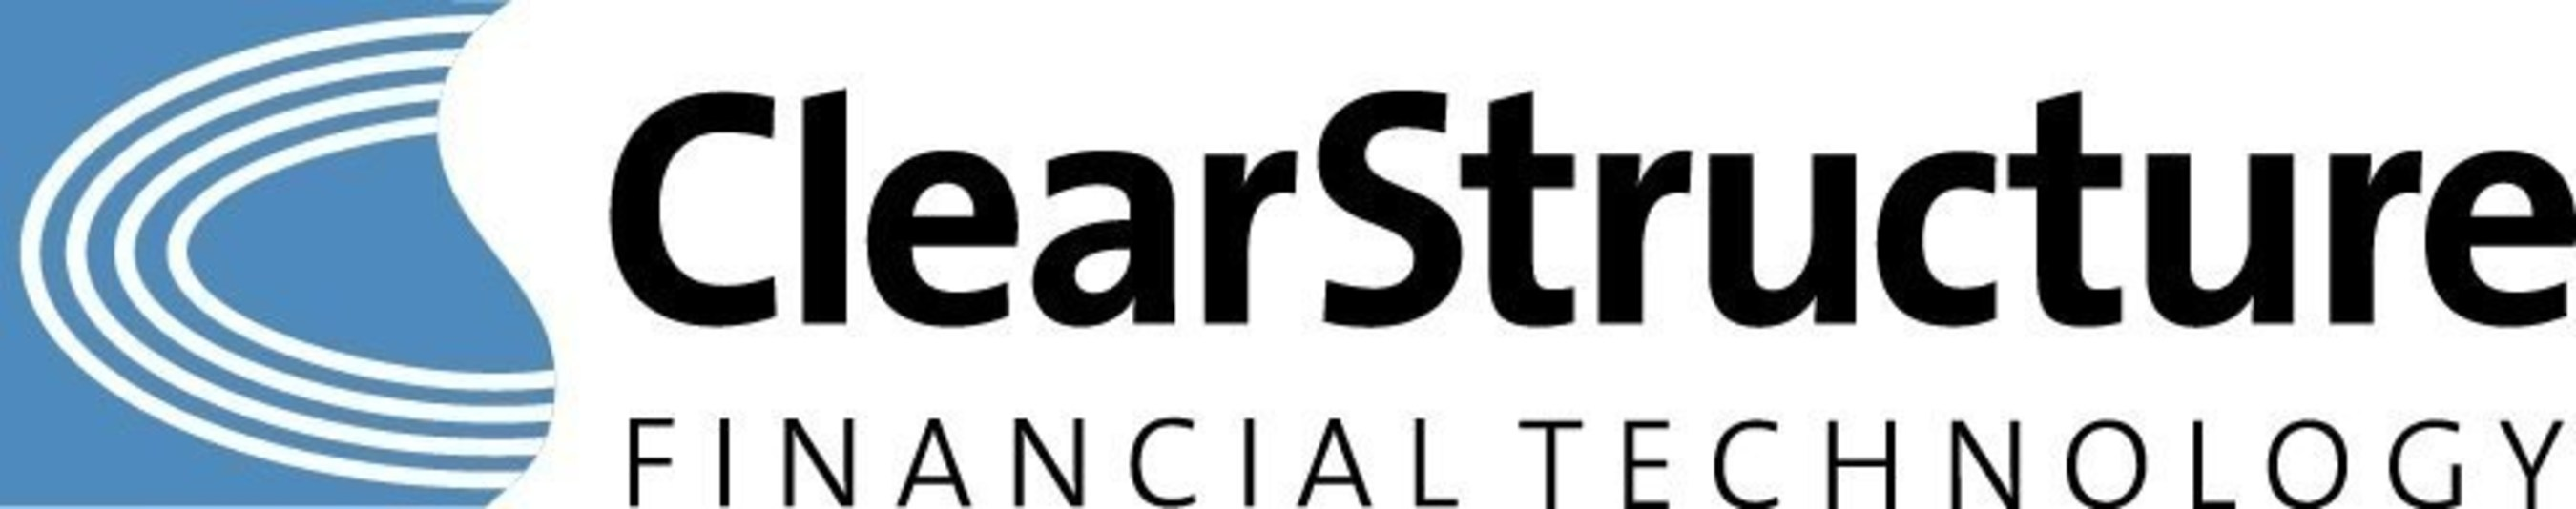 ClearStructure Financial Technology Sentry PM